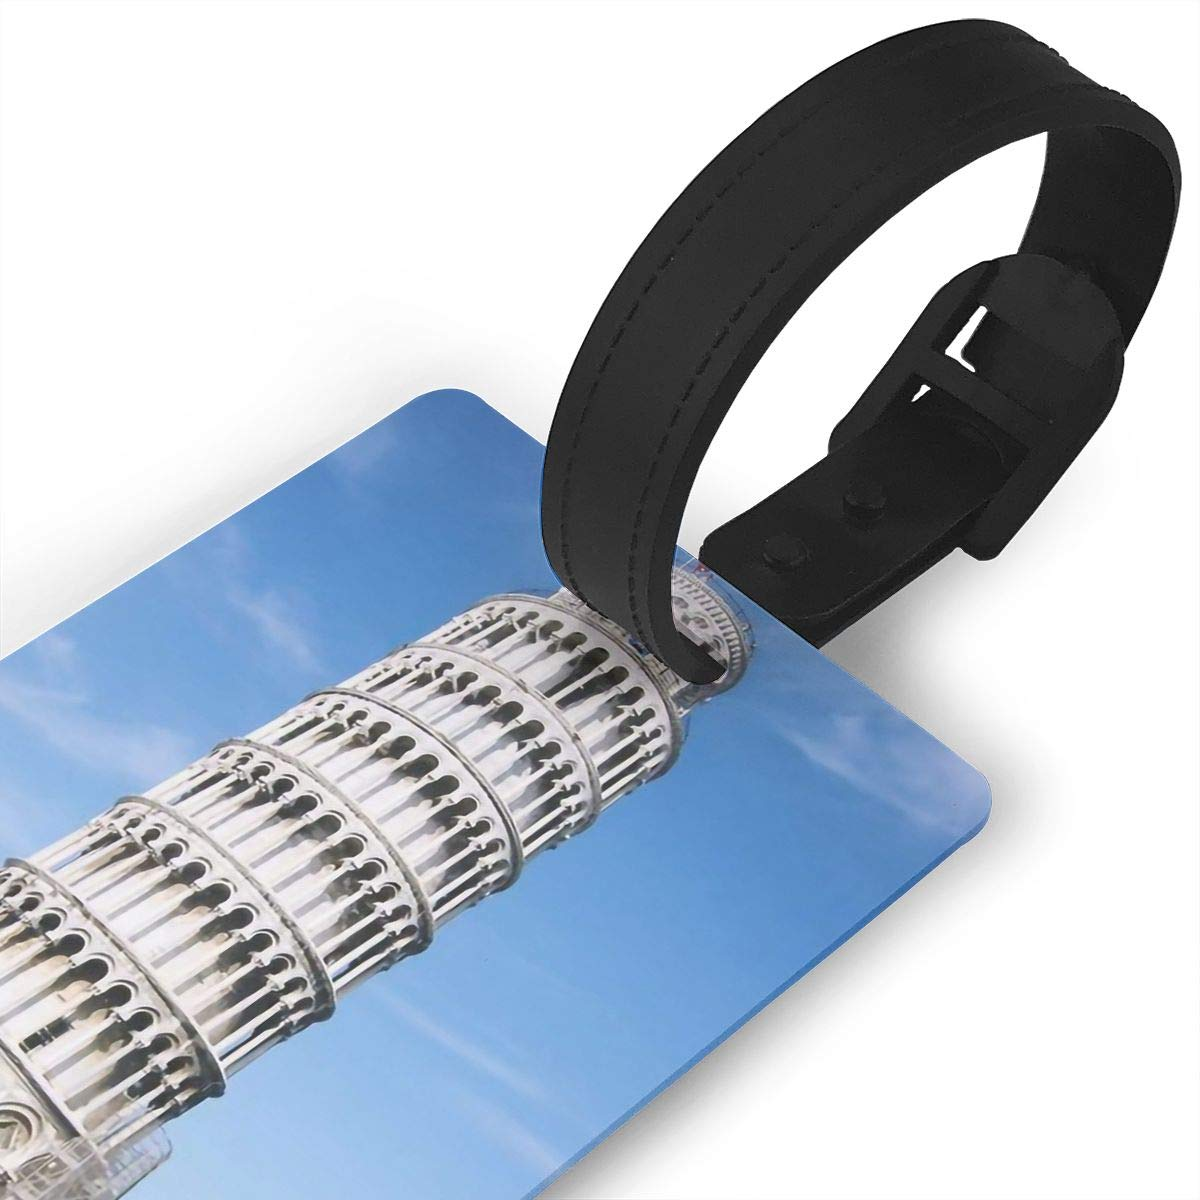 2 Pack Luggage Tags Leaning Tower Of Pisa Handbag Tag For Travel Bag Suitcase Accessories